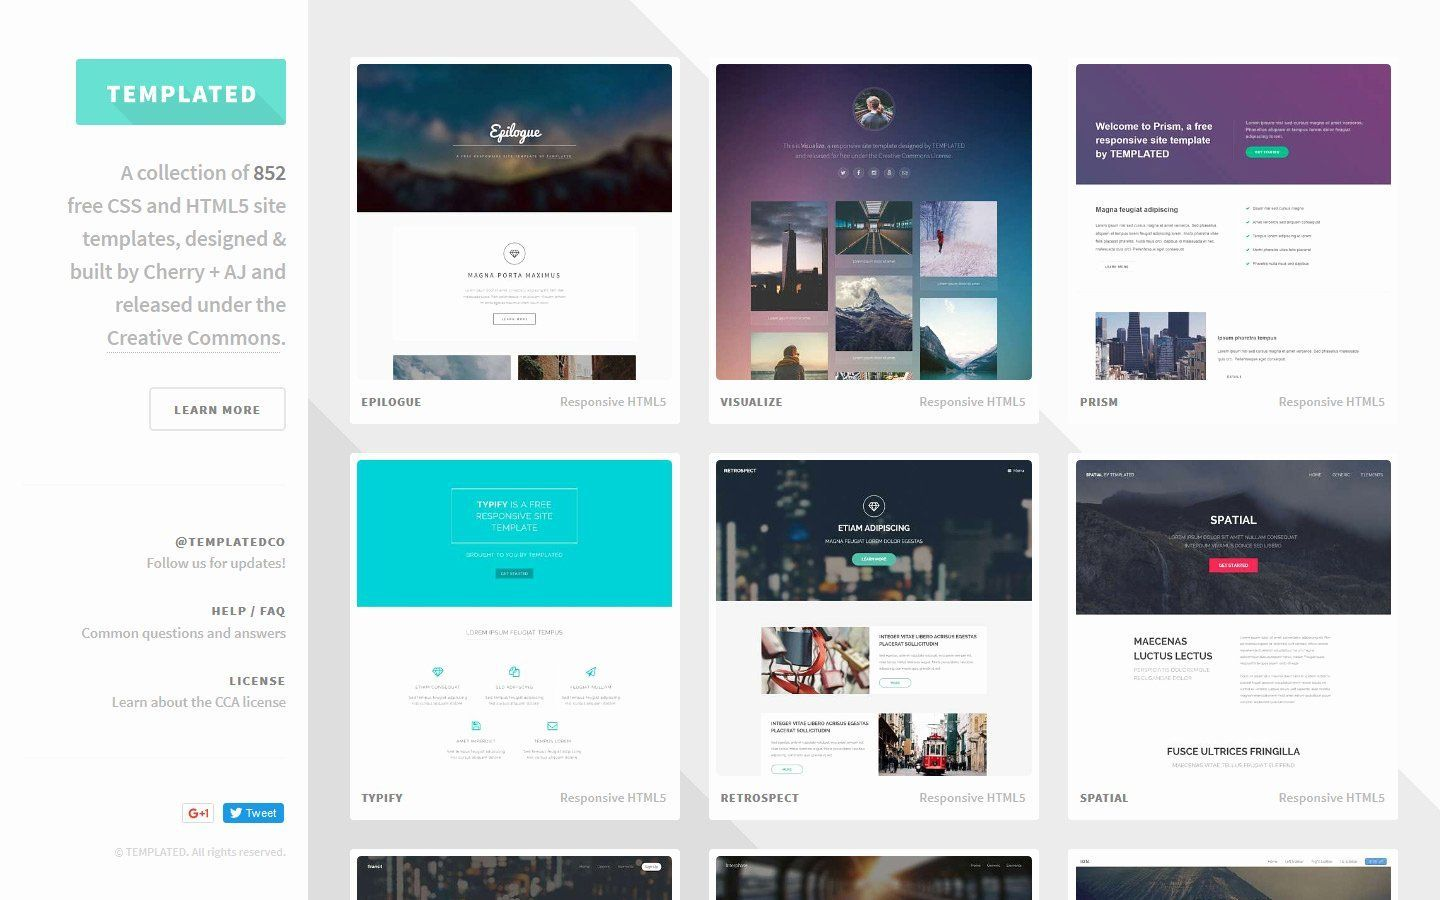 Responsive Web Design Html Template Free Download Luxury Templated Free Css Html Design Download Lux In 2020 Css Website Templates Template Site Simple Website